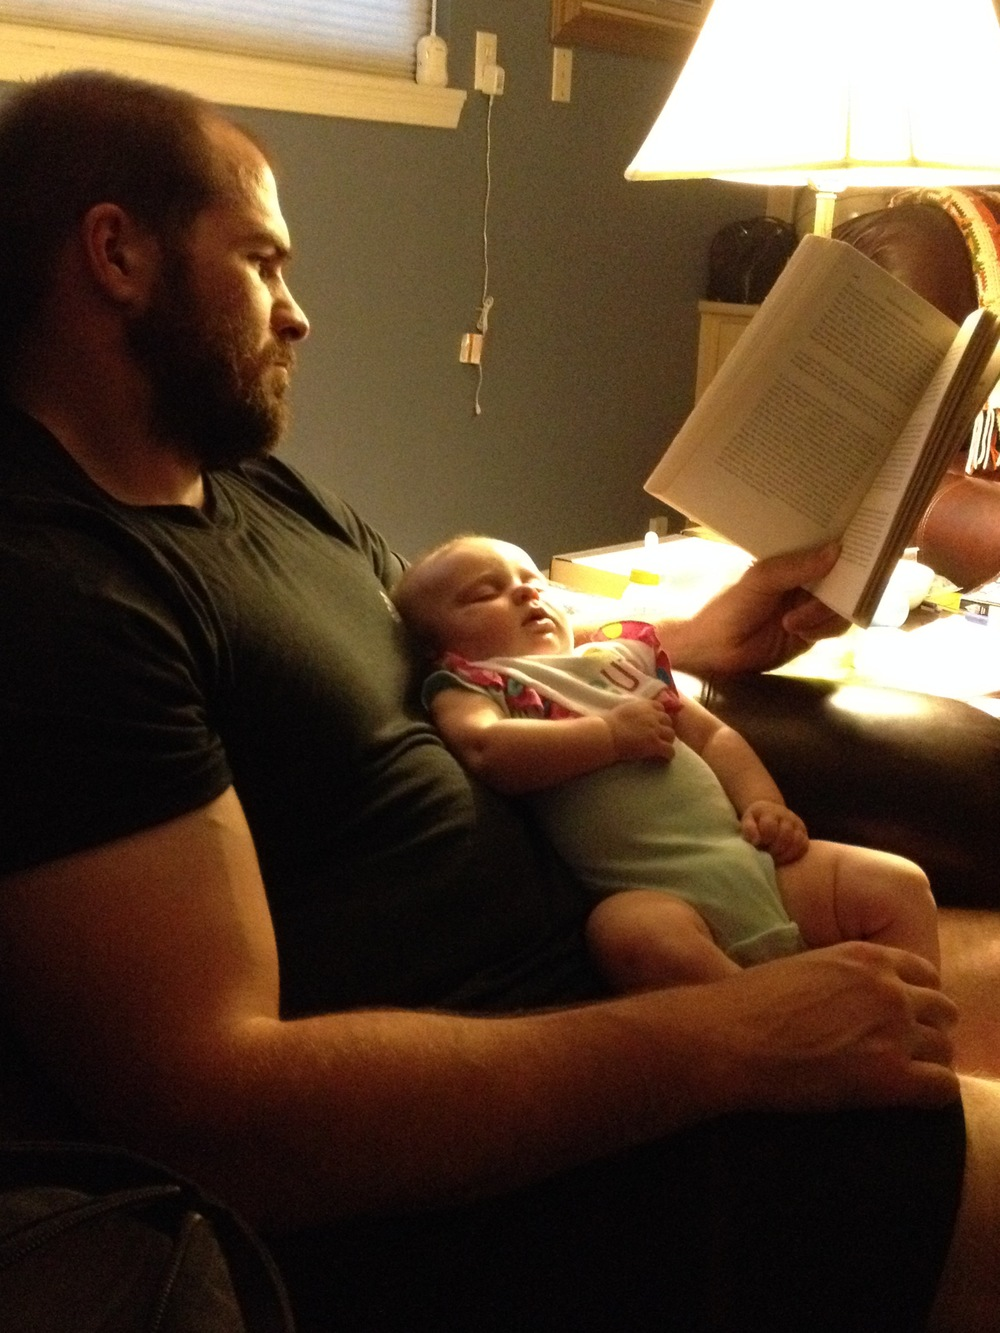 Evie likes reading, but Traherne puts her to sleep.